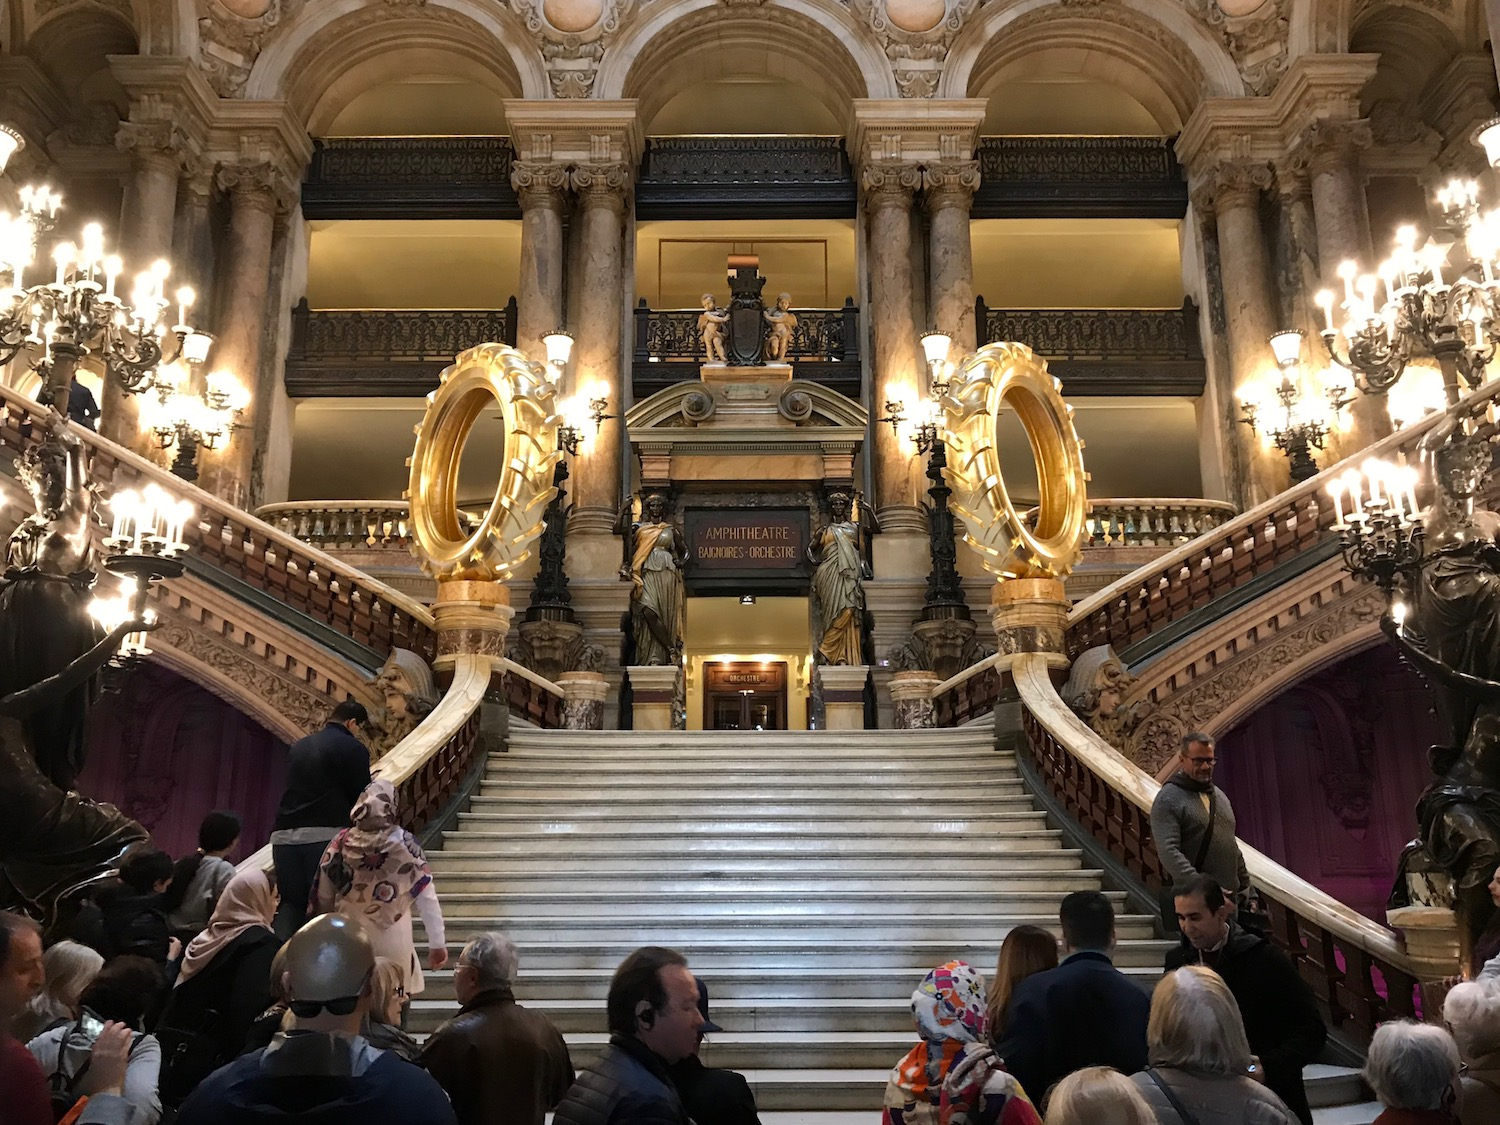 The Paris Opera House (Palais Garnier) Grand Staircase 2019